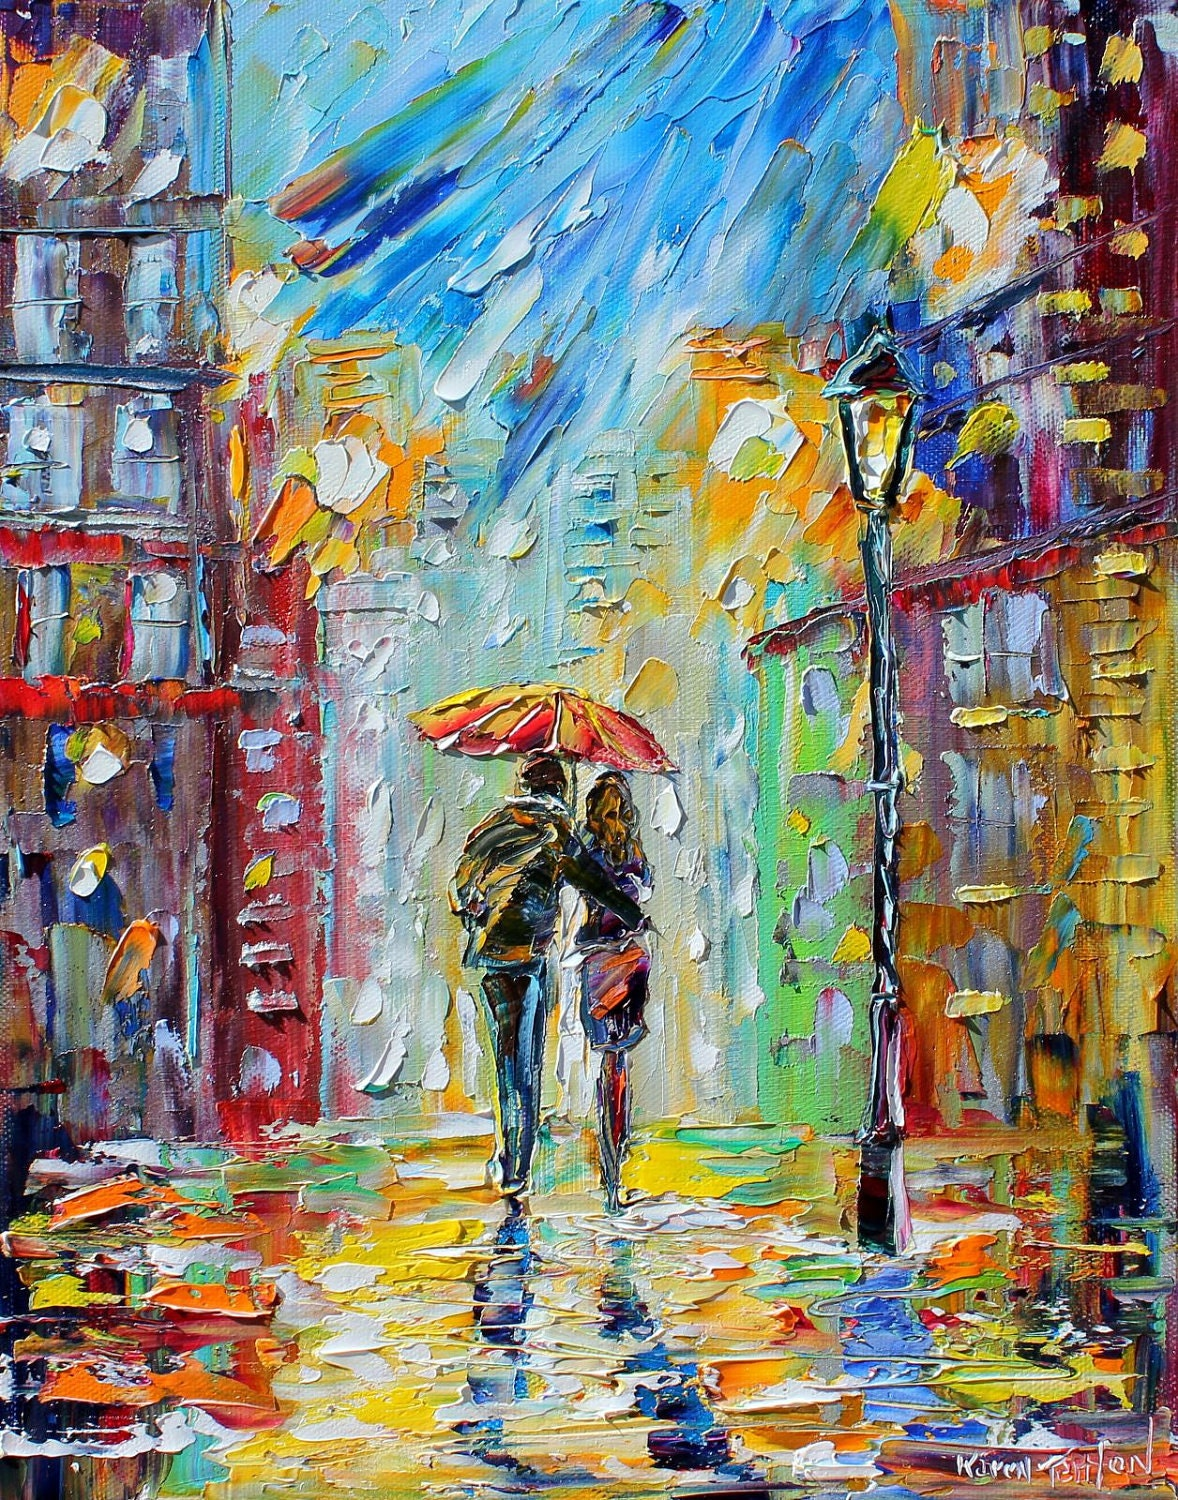 "Rain Romance 22"" x 28"" Gallery Quality Giclee Print on Museum Archival canvas of Original painting by Karen Tarlton fine art - Karensfineart"